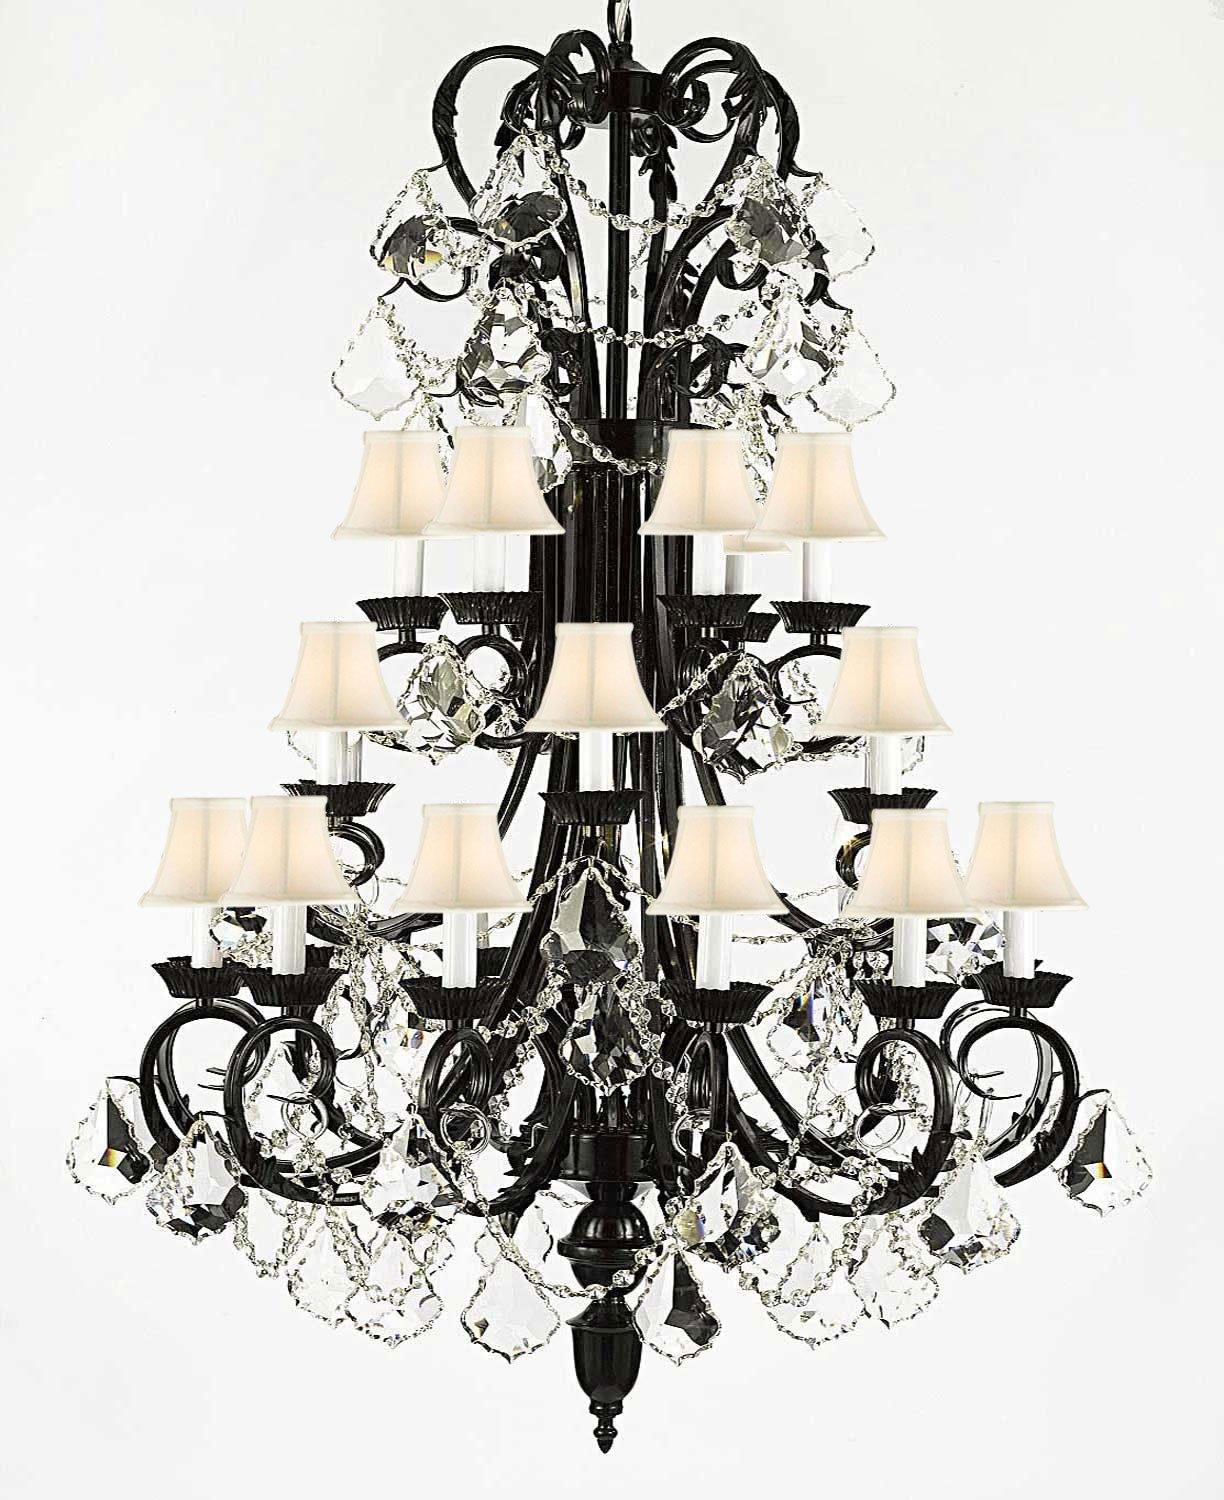 Entryway/Foyer Wrought Iron Chandelier Lighting 50In Tall With Crystal & Shades